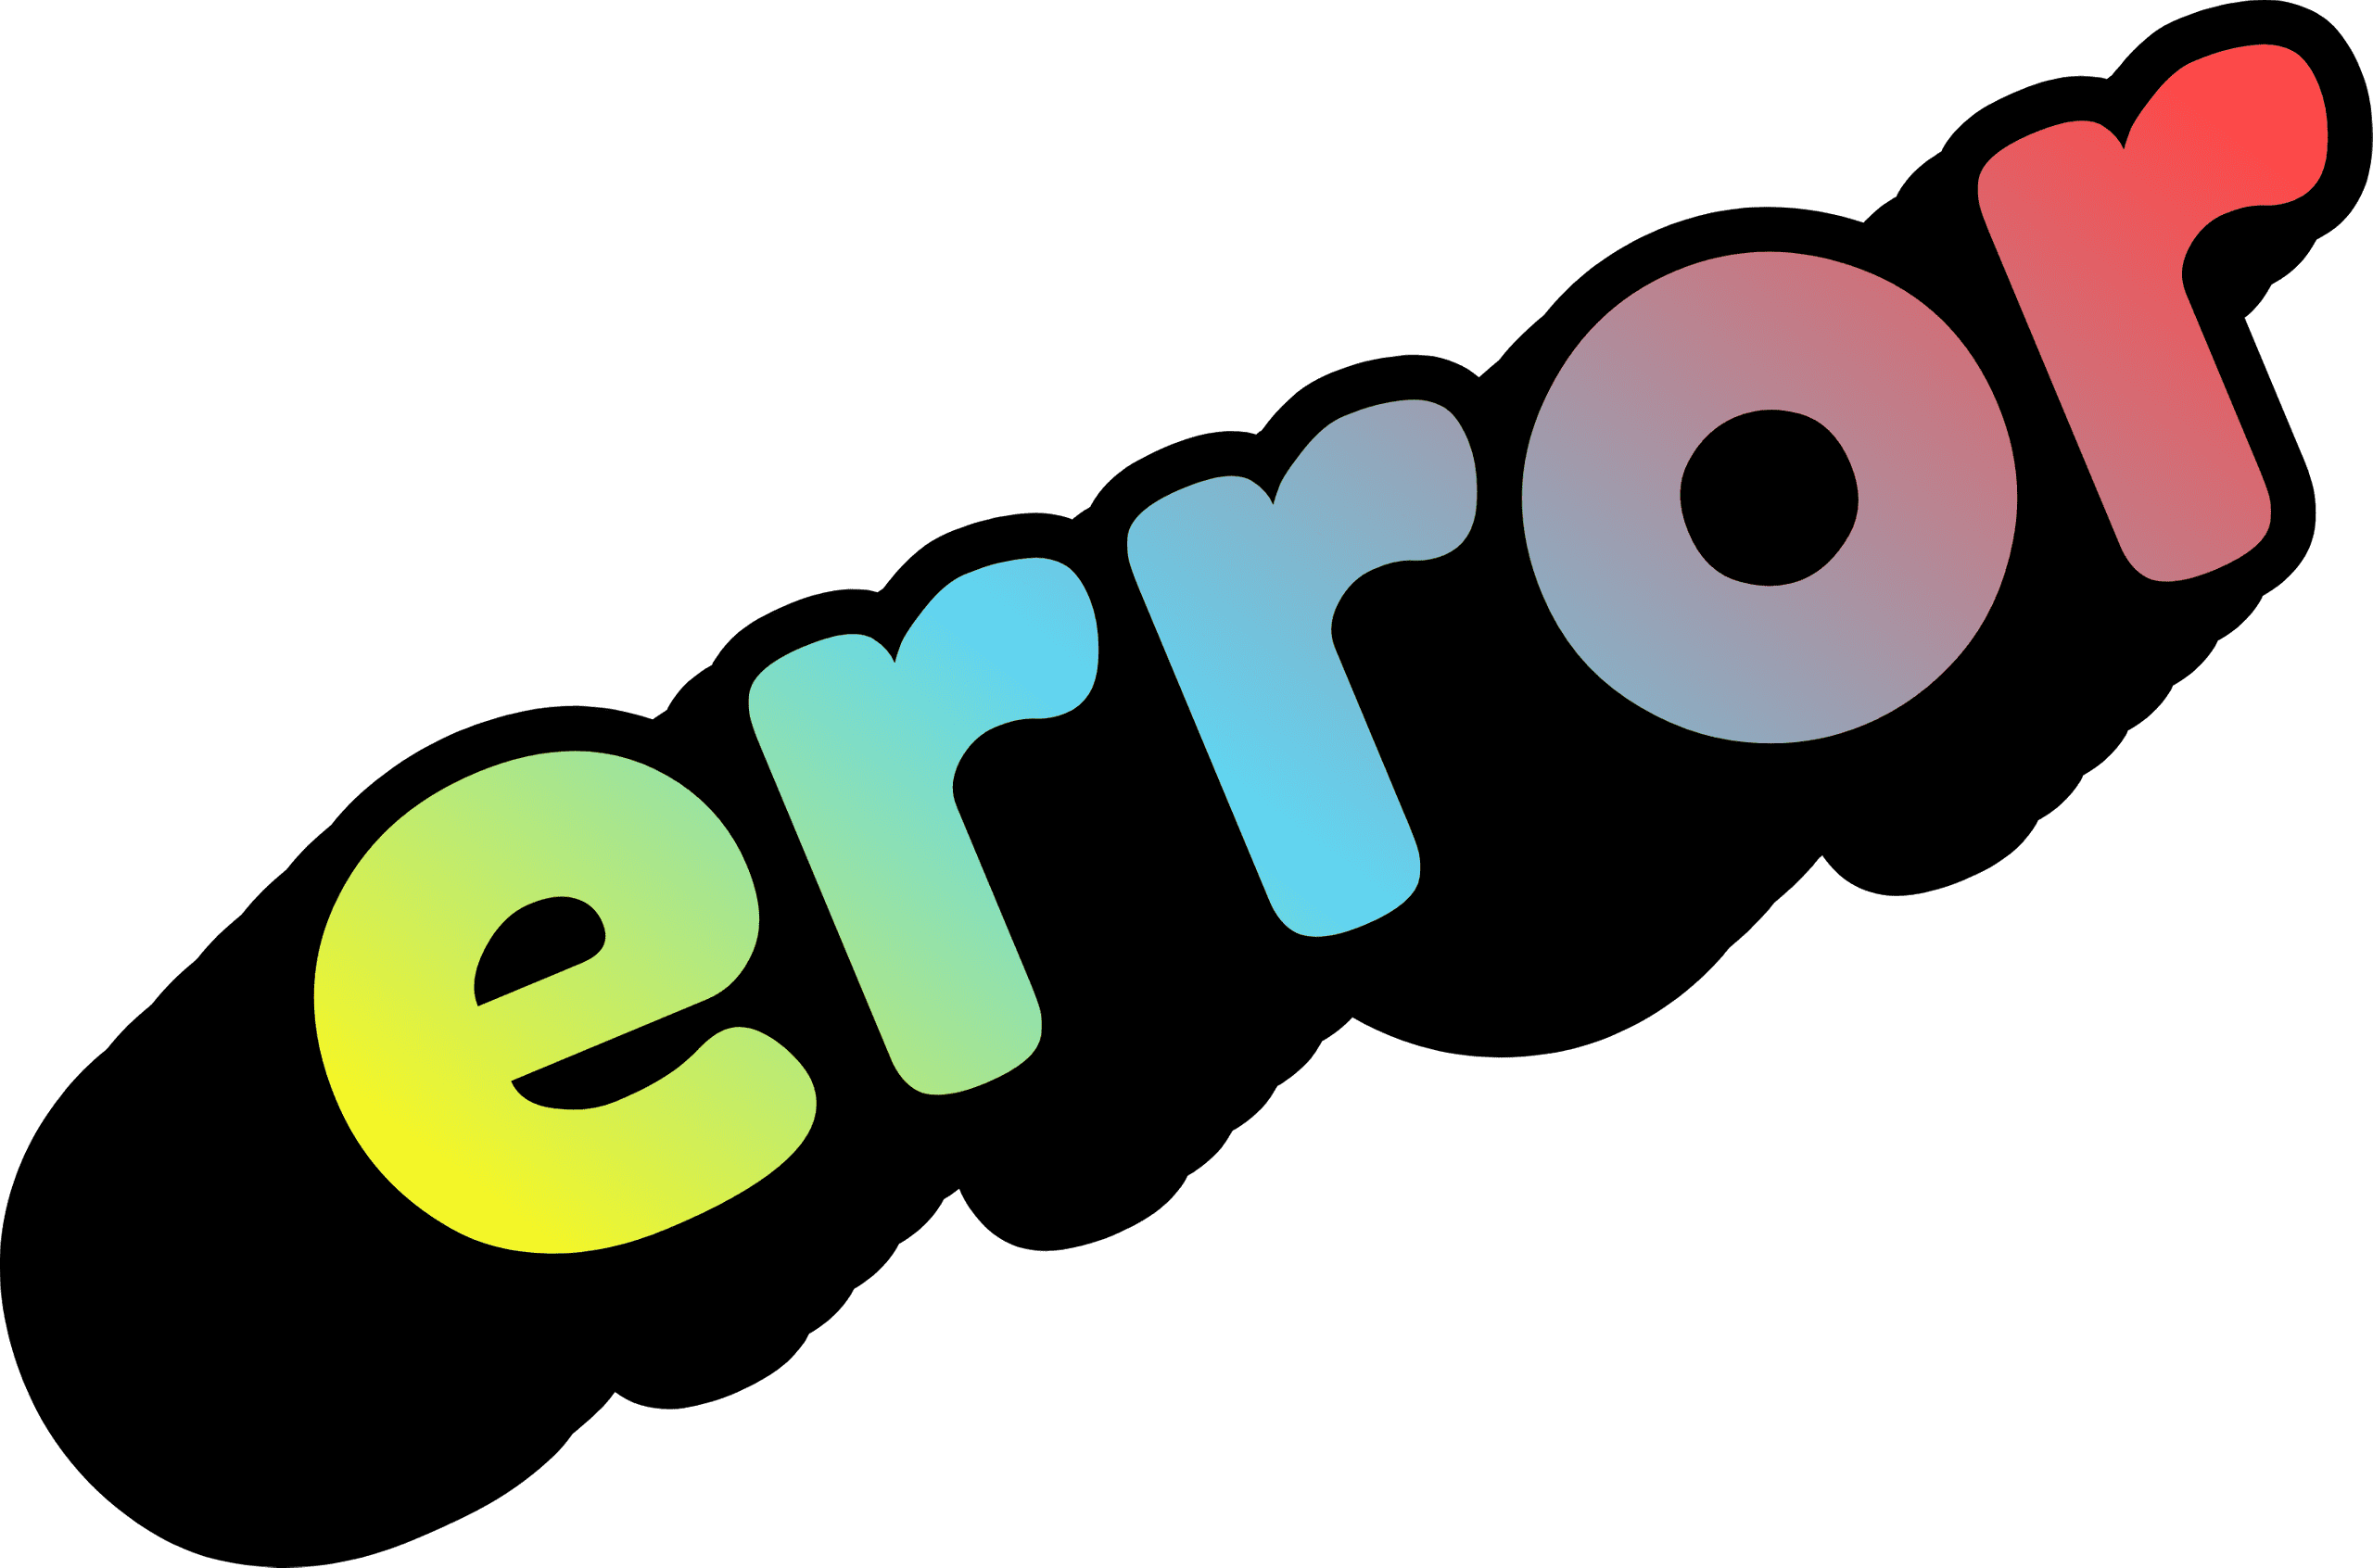 the word error with a rainbow gradient and black shadow 3D pop-out effect